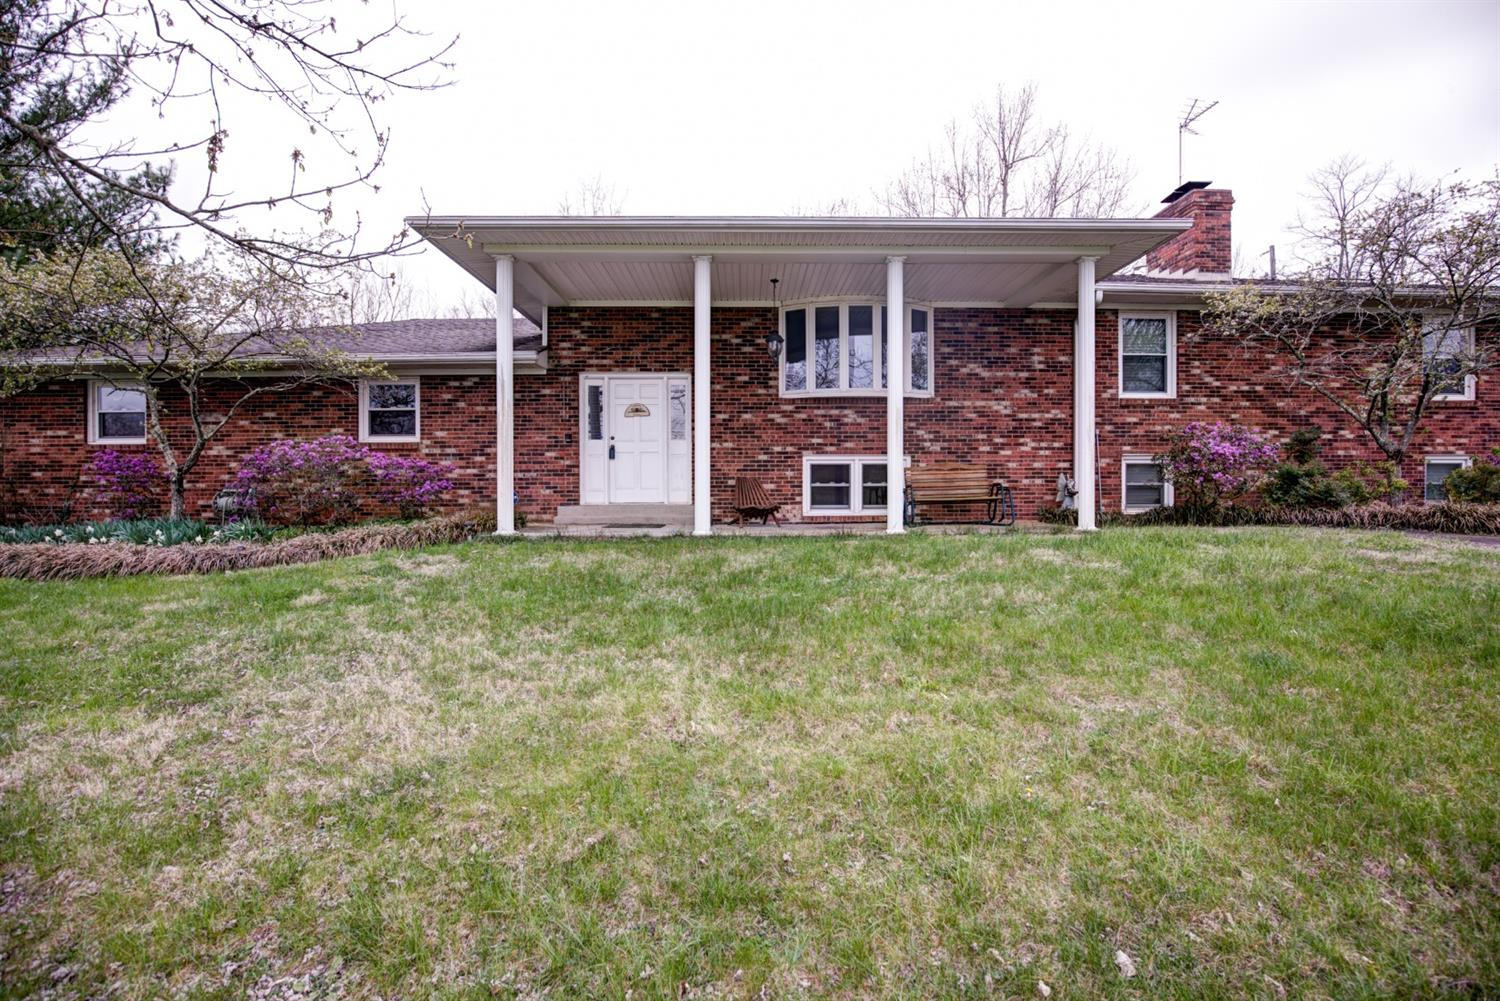 Home For Sale at 2600 Russell Cave Rd, Lexington, KY 40511